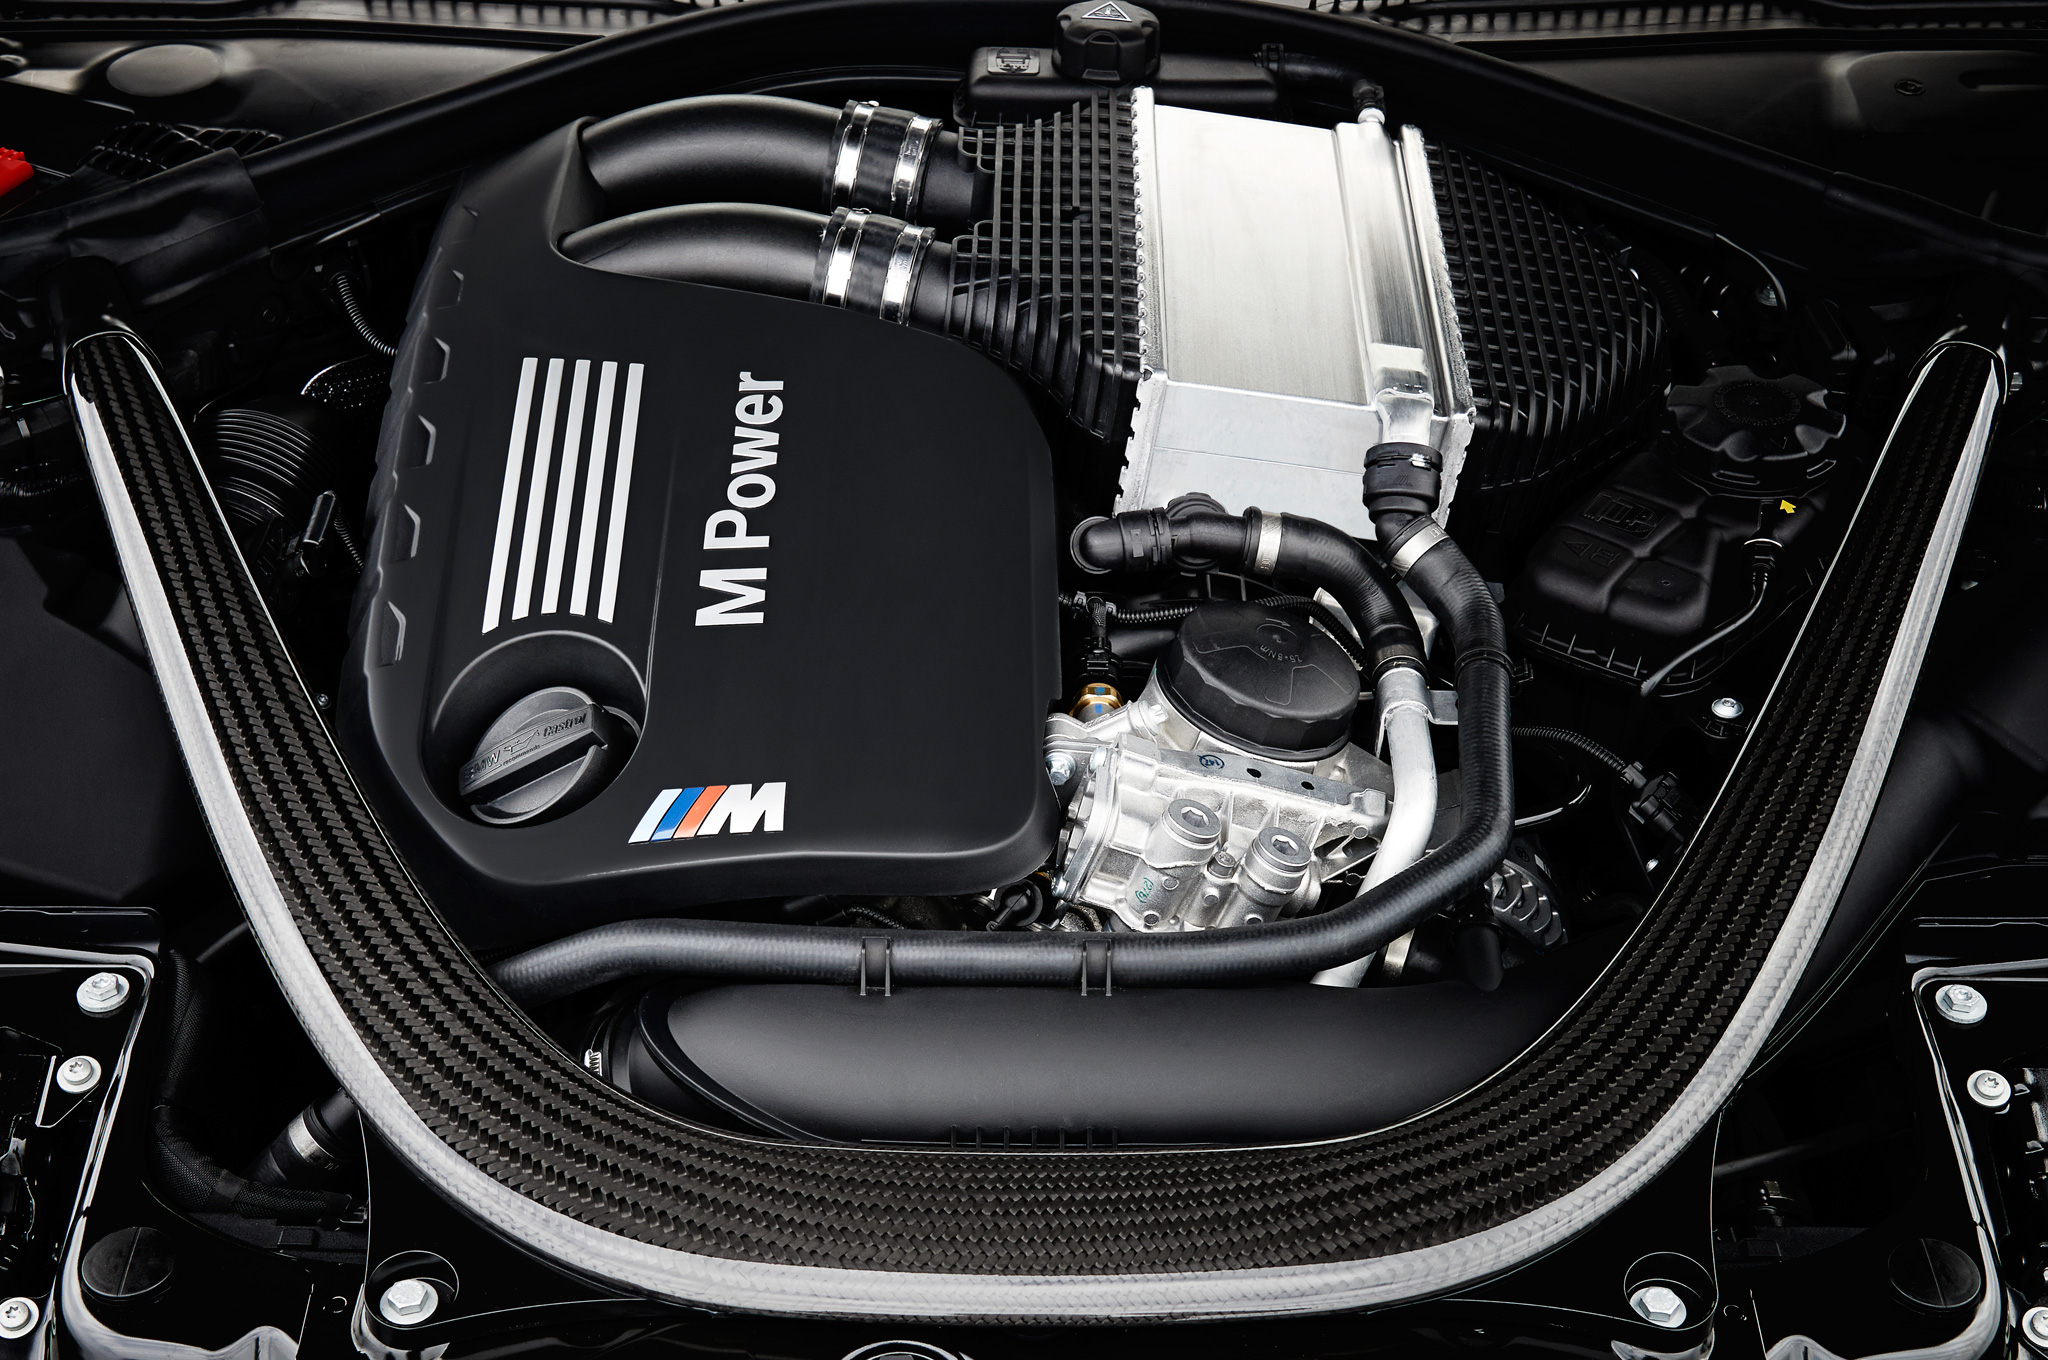 2015 Bmw M4 Convertible Engine View (Photo 35 of 50)